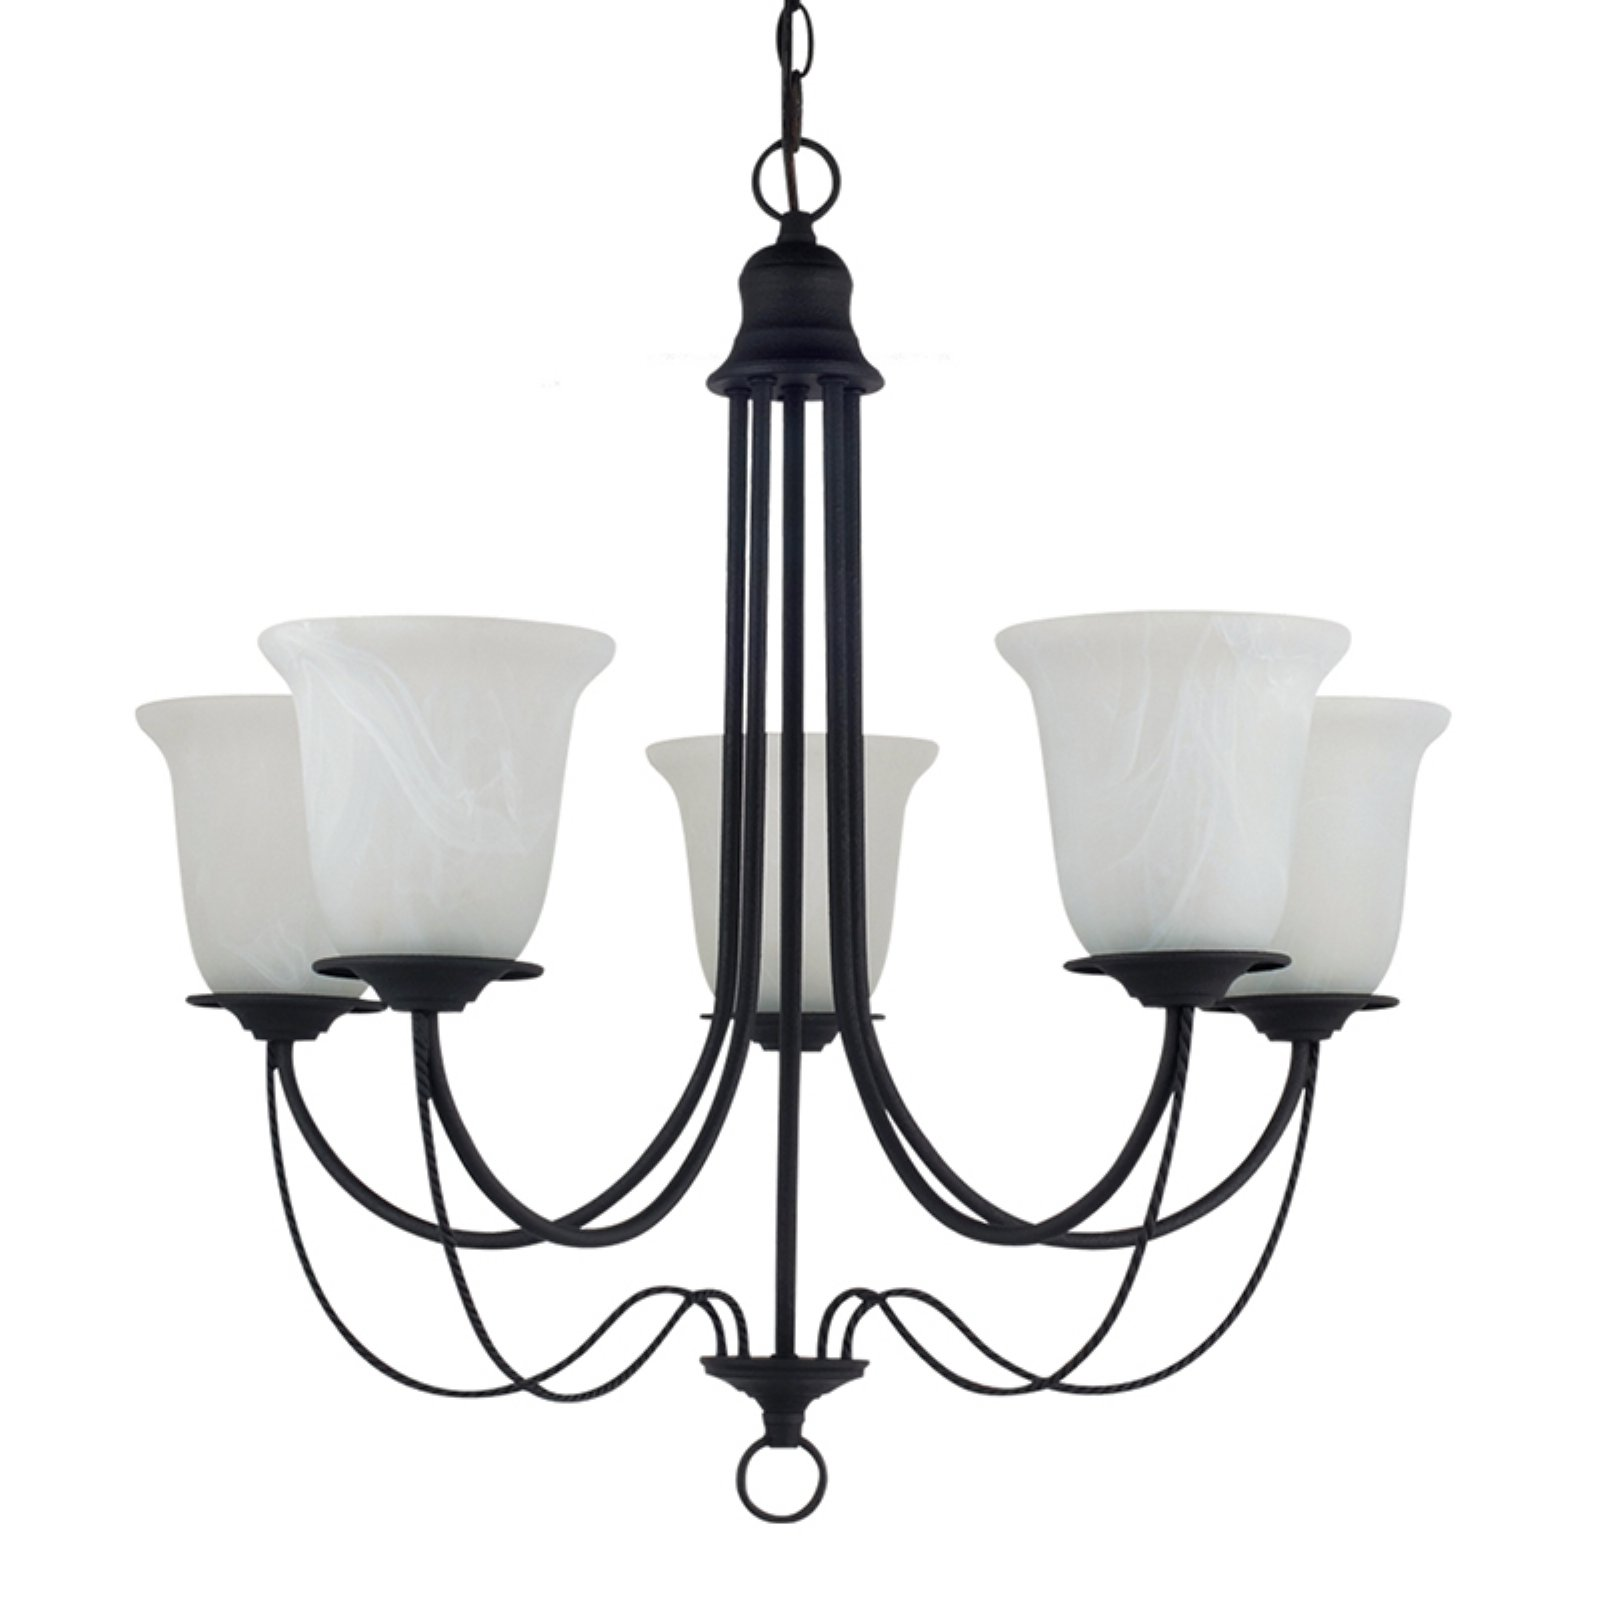 Sea Gull Lighting Plymouth 5-Light Chandelier - 26W in. Blacksmith